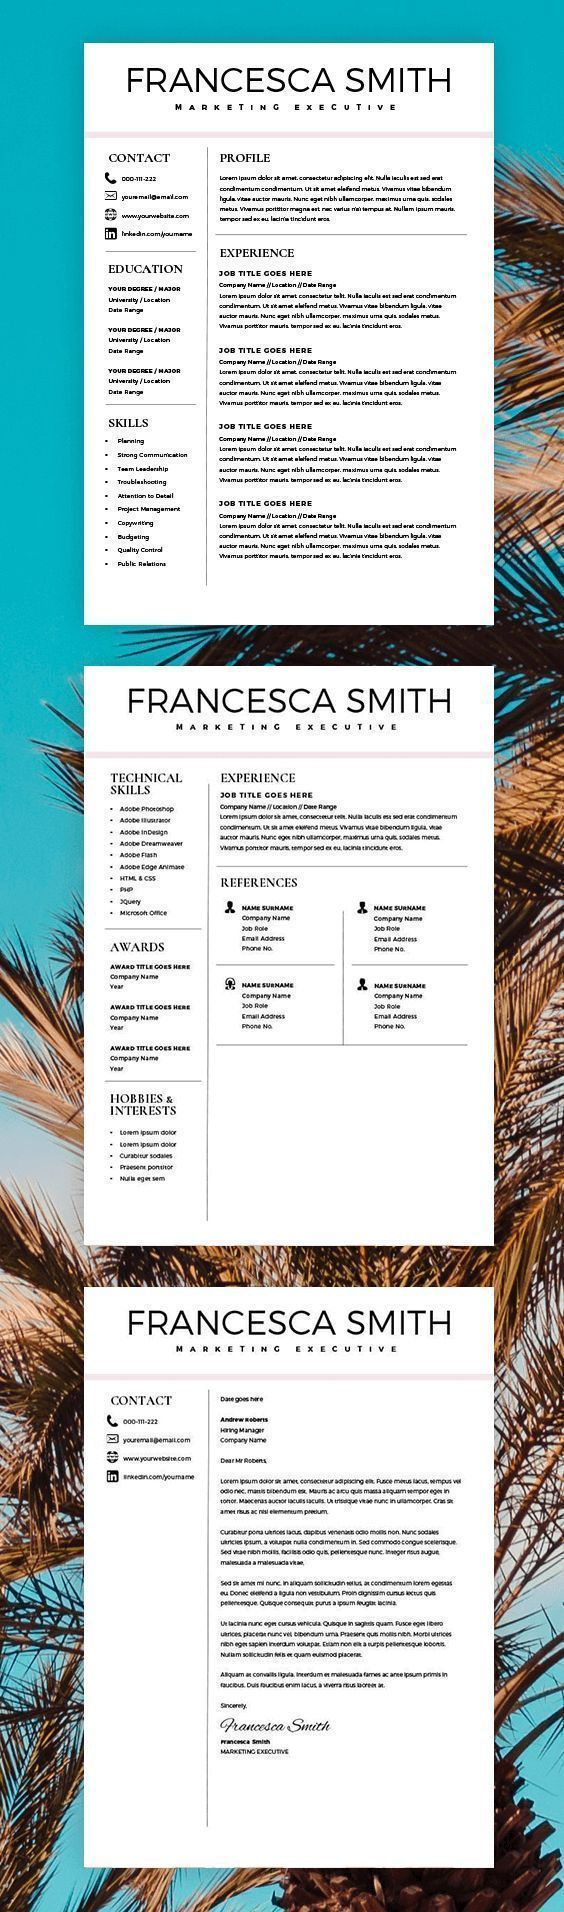 Best 25+ Fashion resume ideas on Pinterest | Fashion cv, Fashion ...